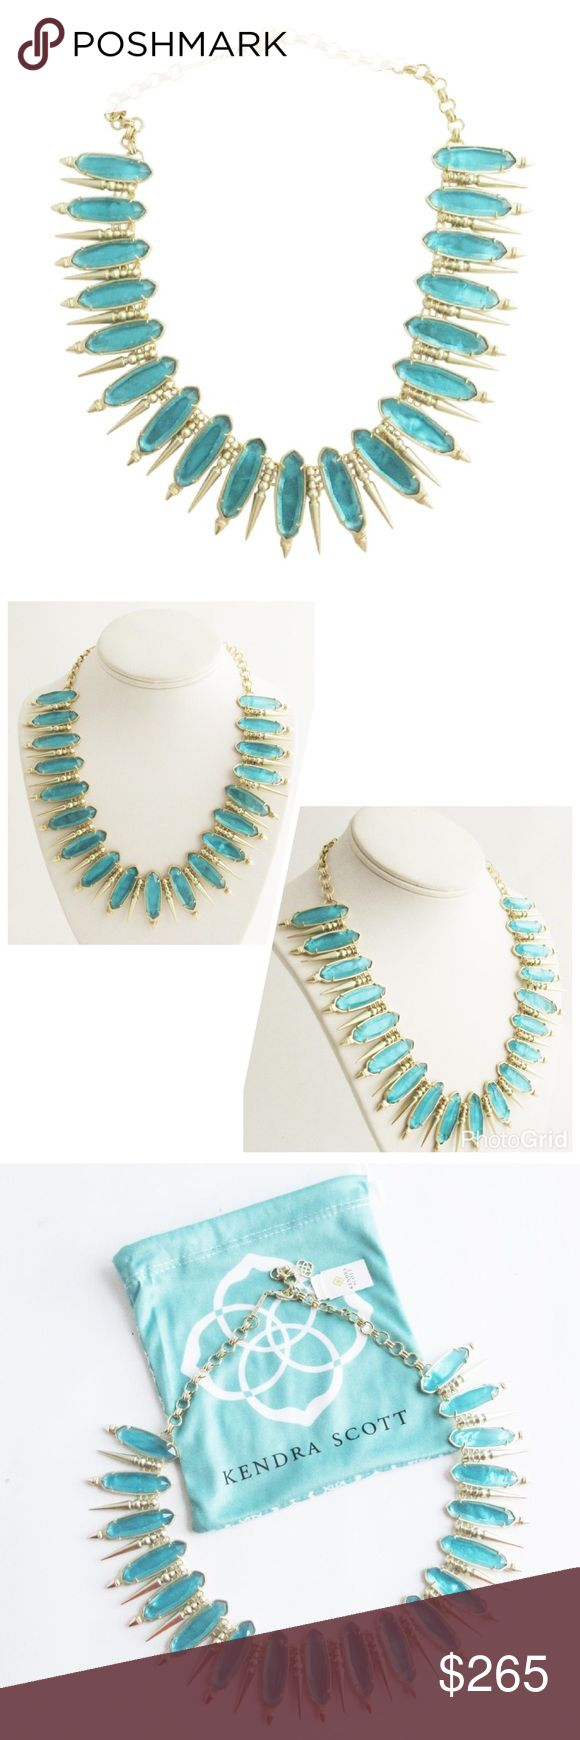 """KENDRA SCOTT Gwendolyn London Blue Illusion Collar KENDRA SCOTT """"Gwendolyn"""" London Blue Illusion Statement Collar Necklace, Crystal stations alternate with spike stations, 14K gold plated over brass, Approx. 1.5""""W X 20""""L, Lobster clasp closure, NEW with tags & pouch. No Trades Kendra Scott Jewelry Necklaces"""